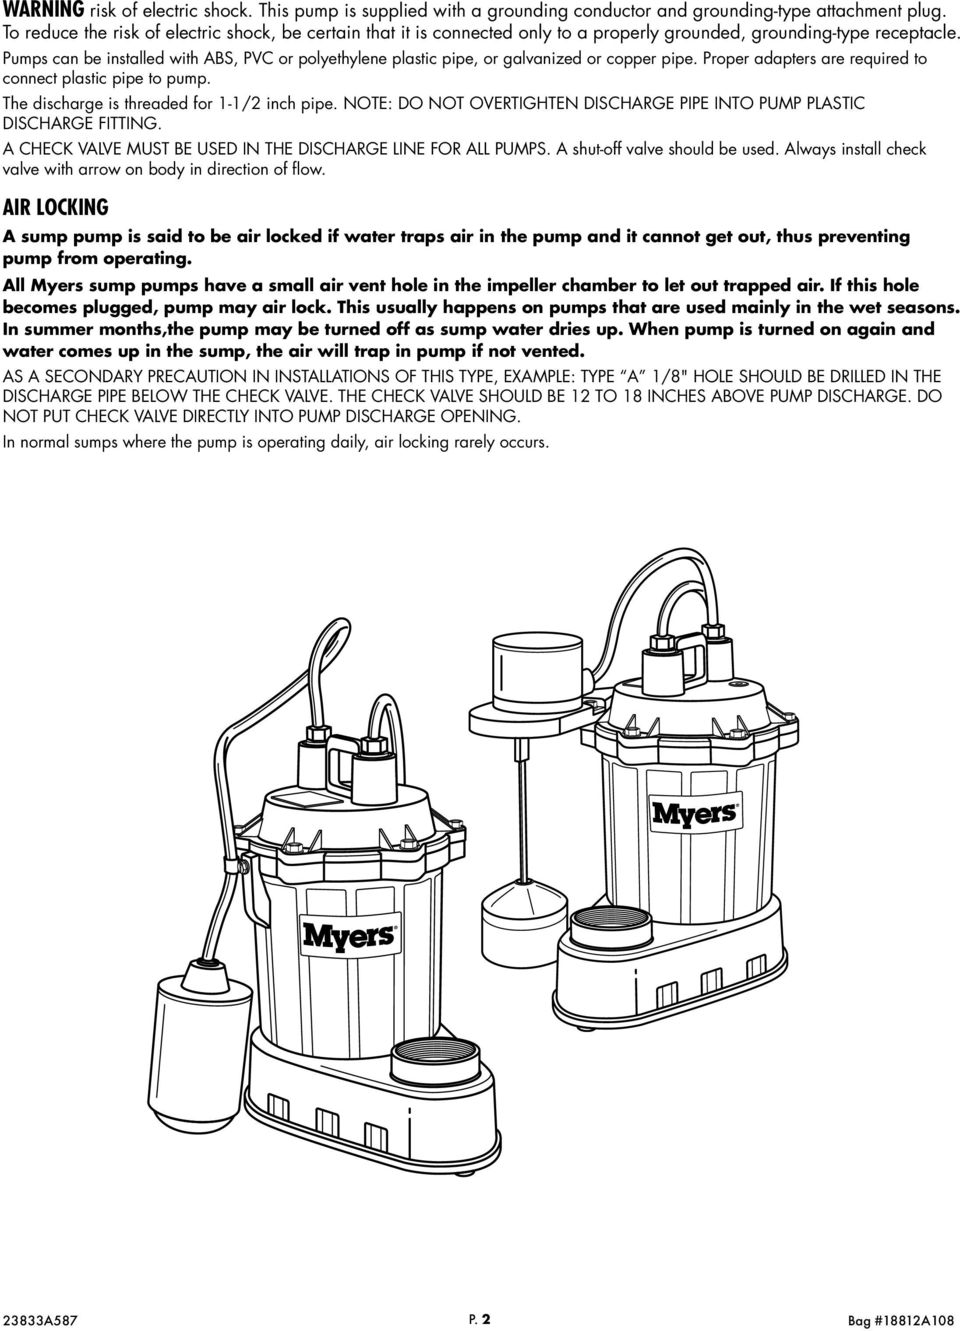 S33 Sump Pump Instructions And Service Manual Vertical Float Switch Wiring Diagram Pumps Can Be Installed With Abs Pvc Or Polyethylene Plastic Pipe Galvanized